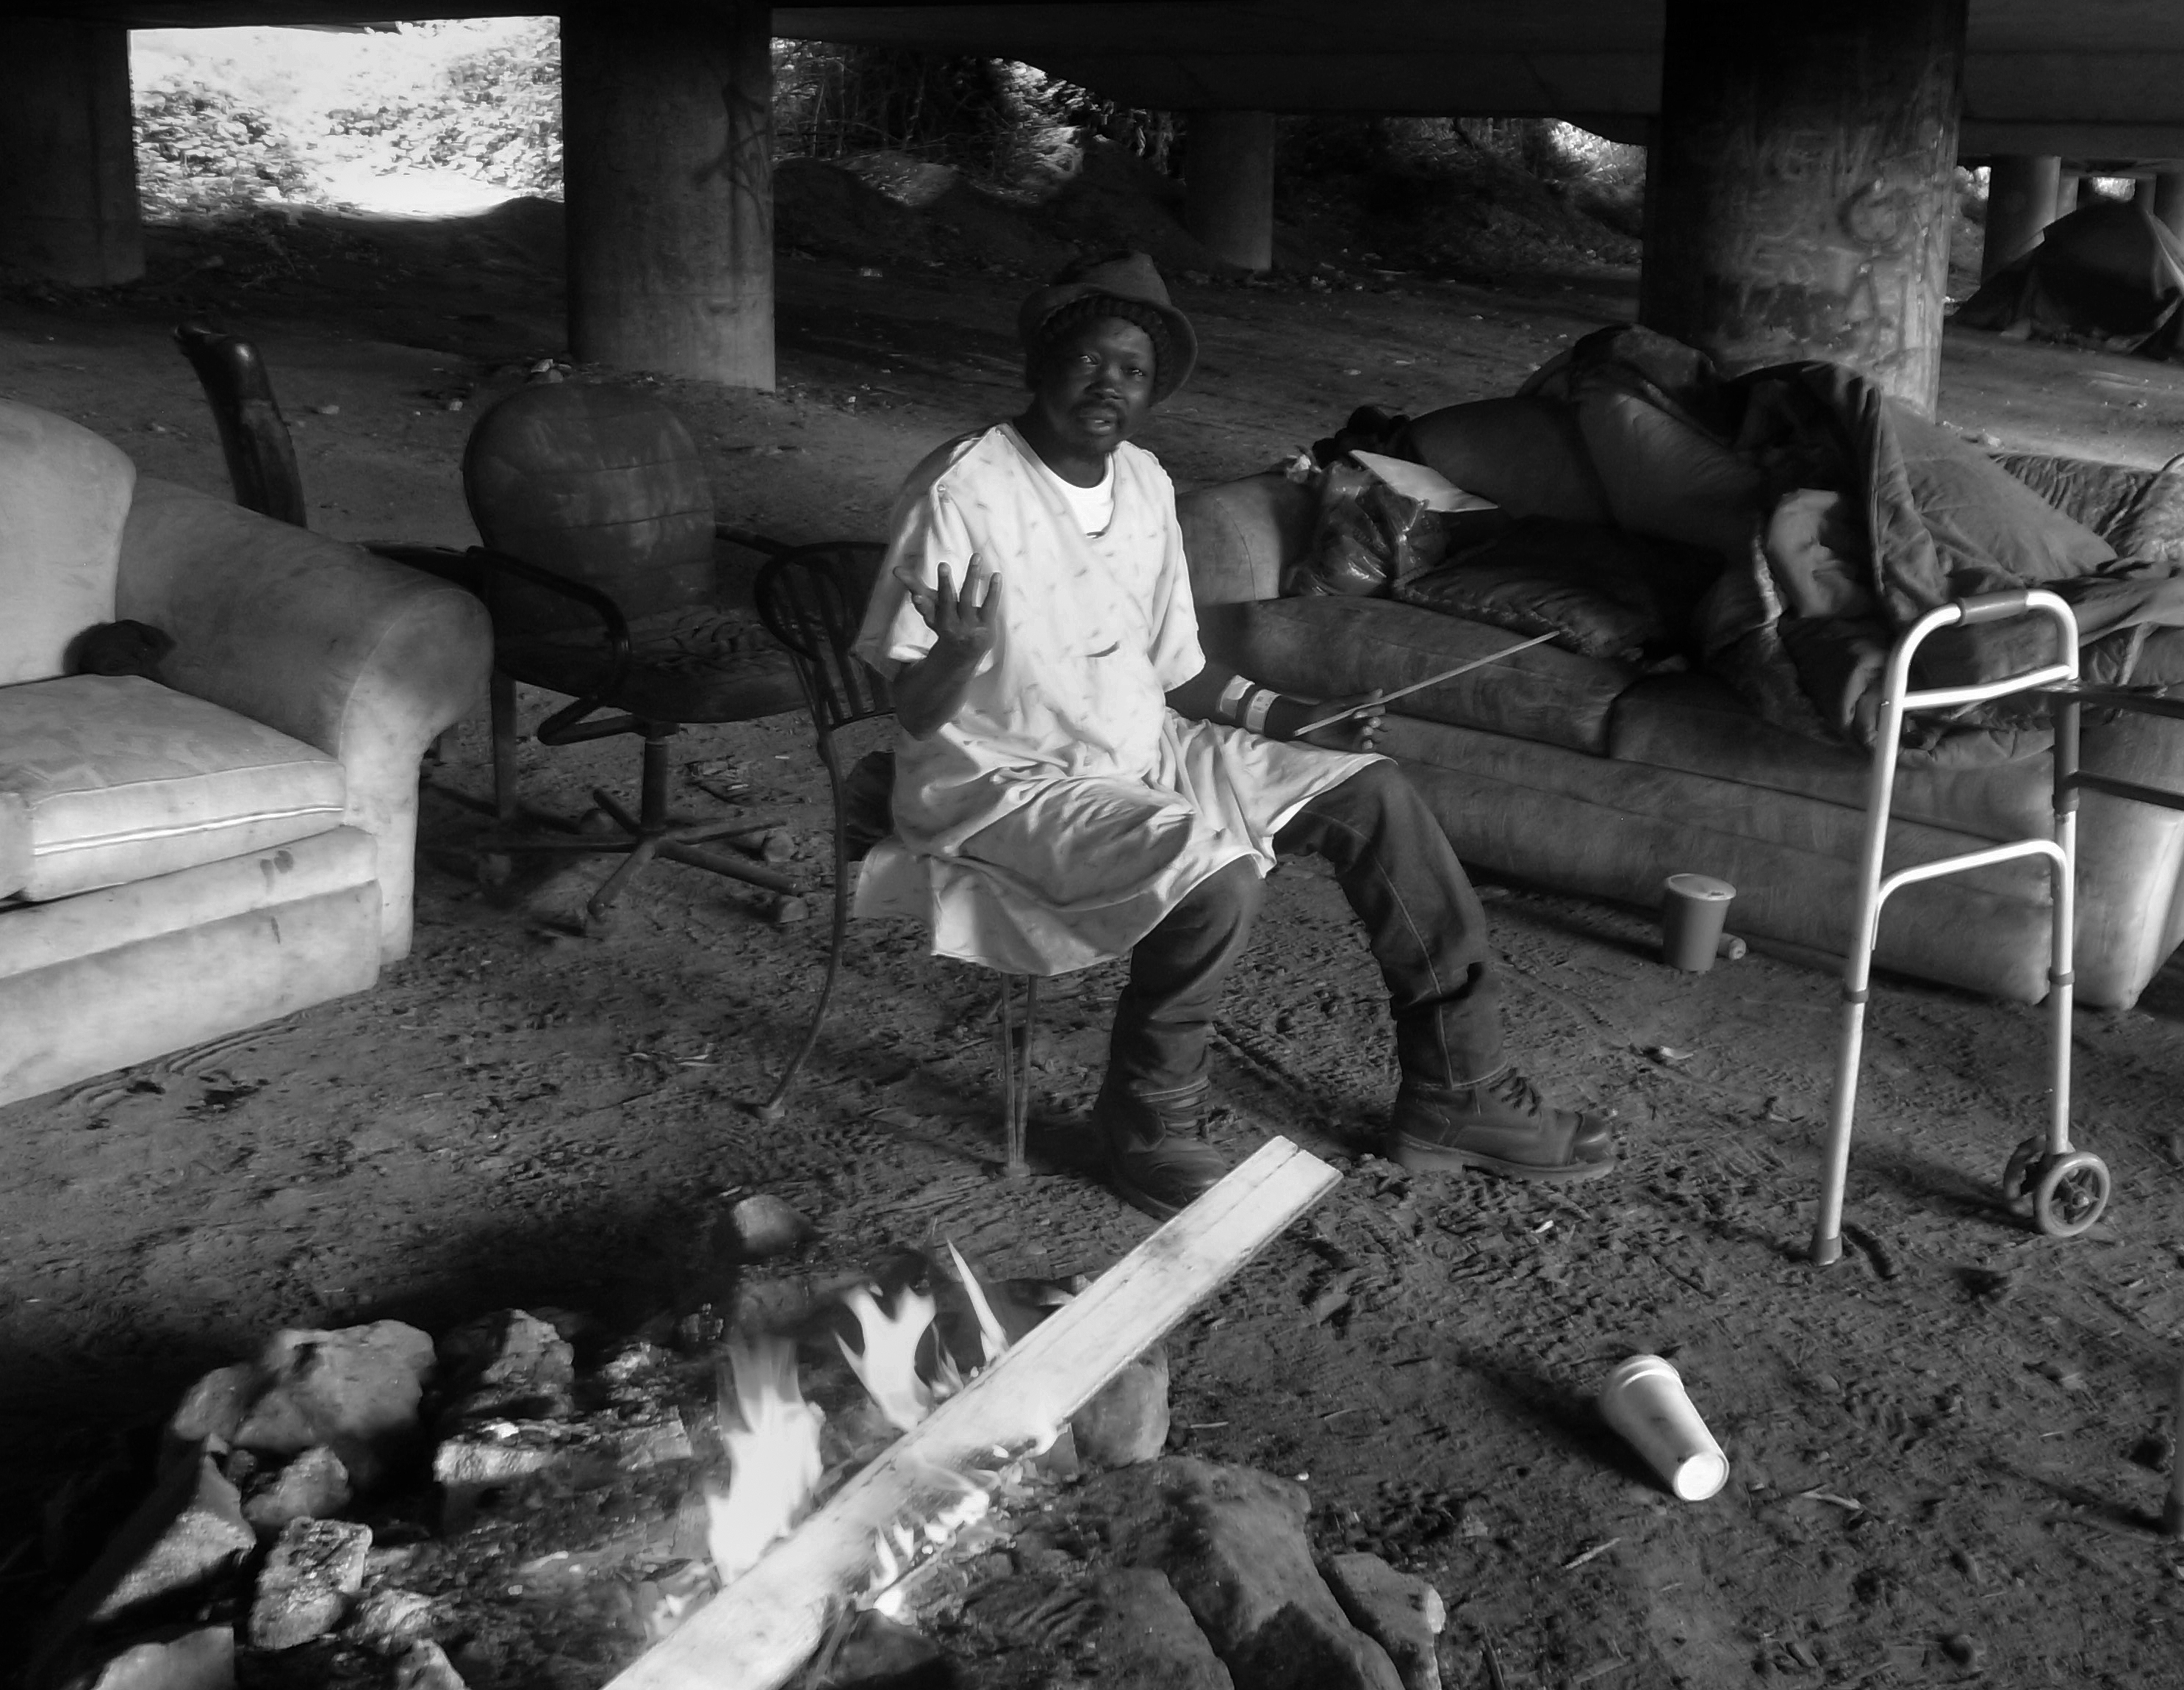 A man wearing a hospital gown and a hat infront of a fire under an overpass